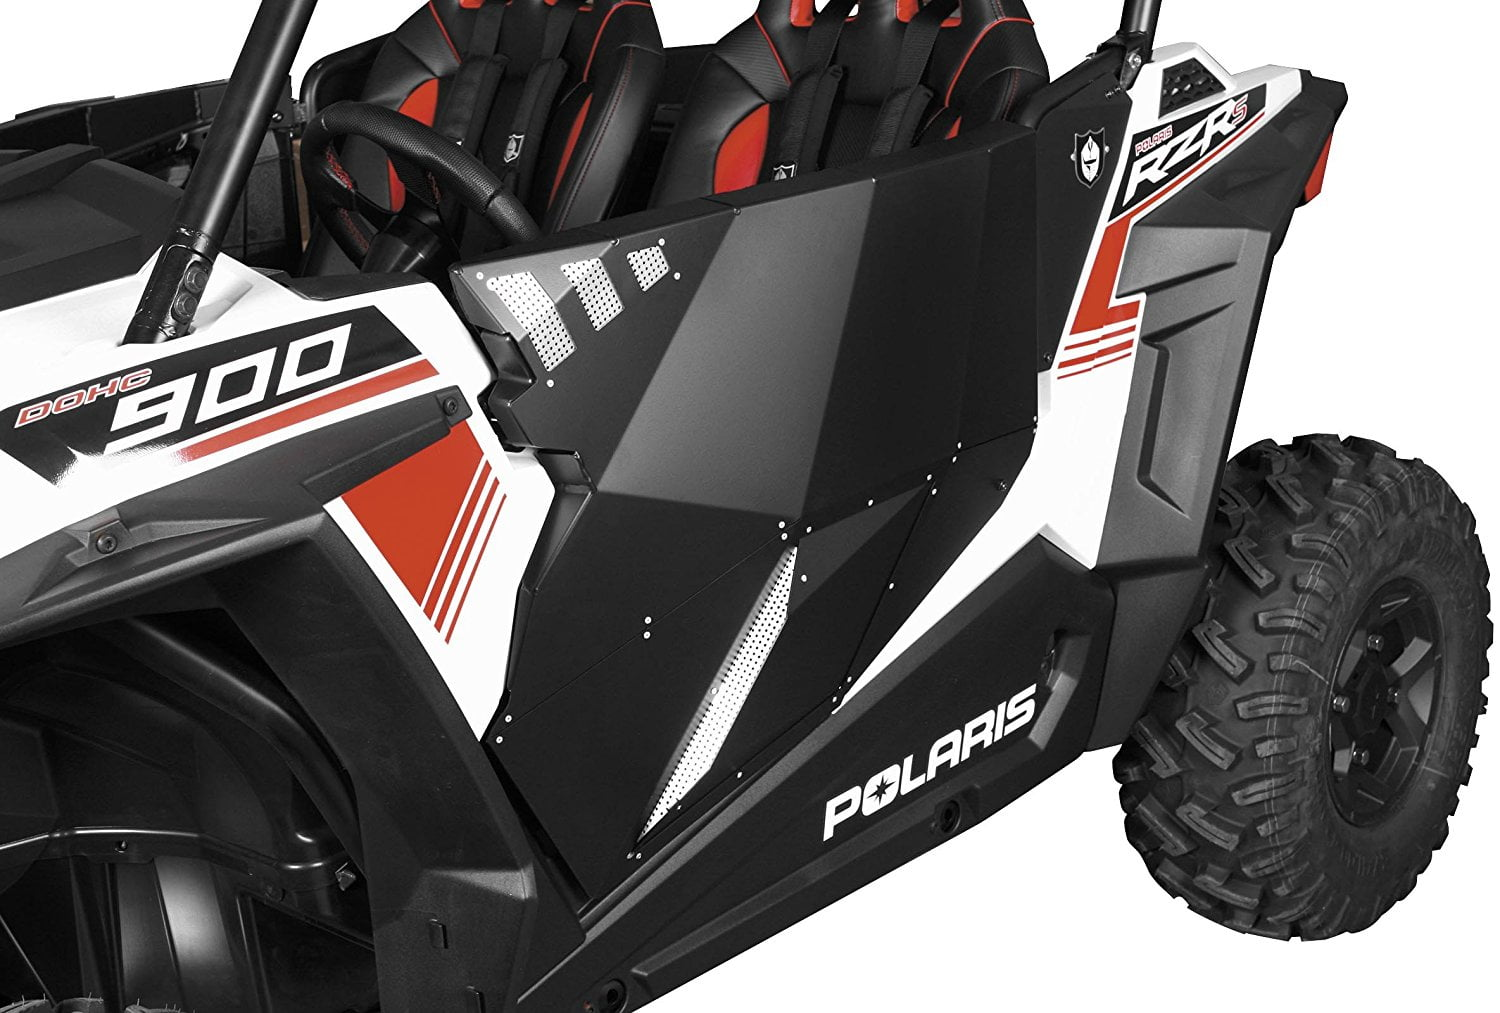 Amazon.com Tons Of Great Deals On Pro Armor Polaris RZR Doors!  sc 1 st  Clever Leverage & Amazon.com: Tons Of Great Deals On Pro Armor Polaris RZR Doors ... pezcame.com